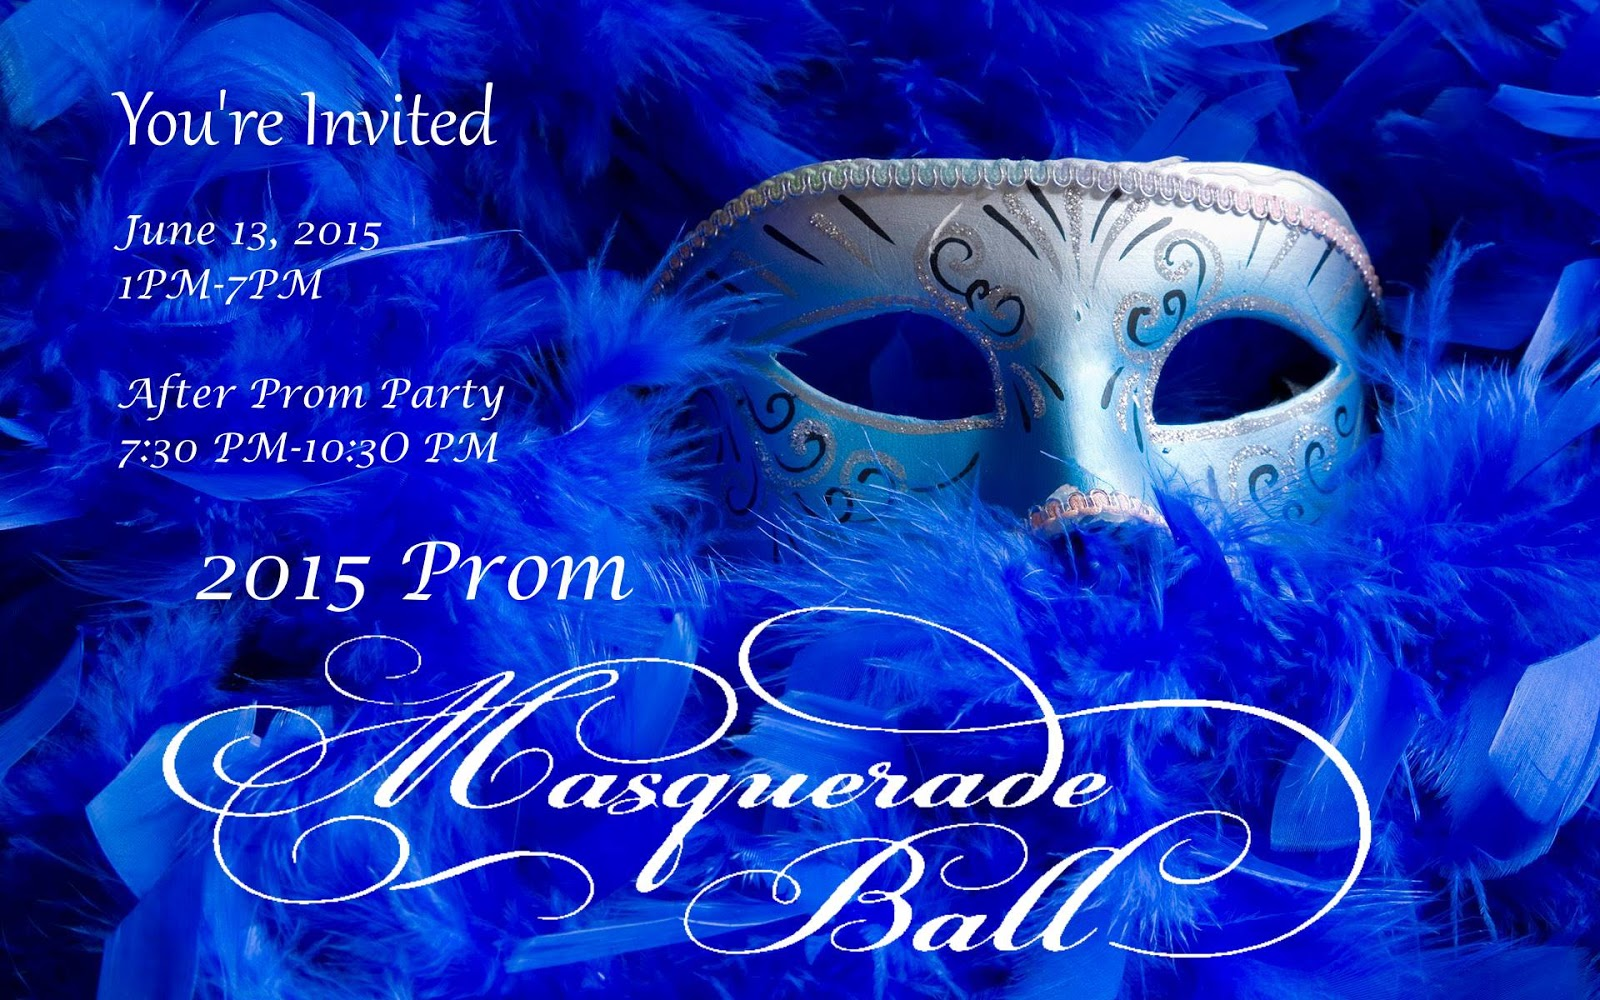 2015 PROM AND MASQUERADE BALL